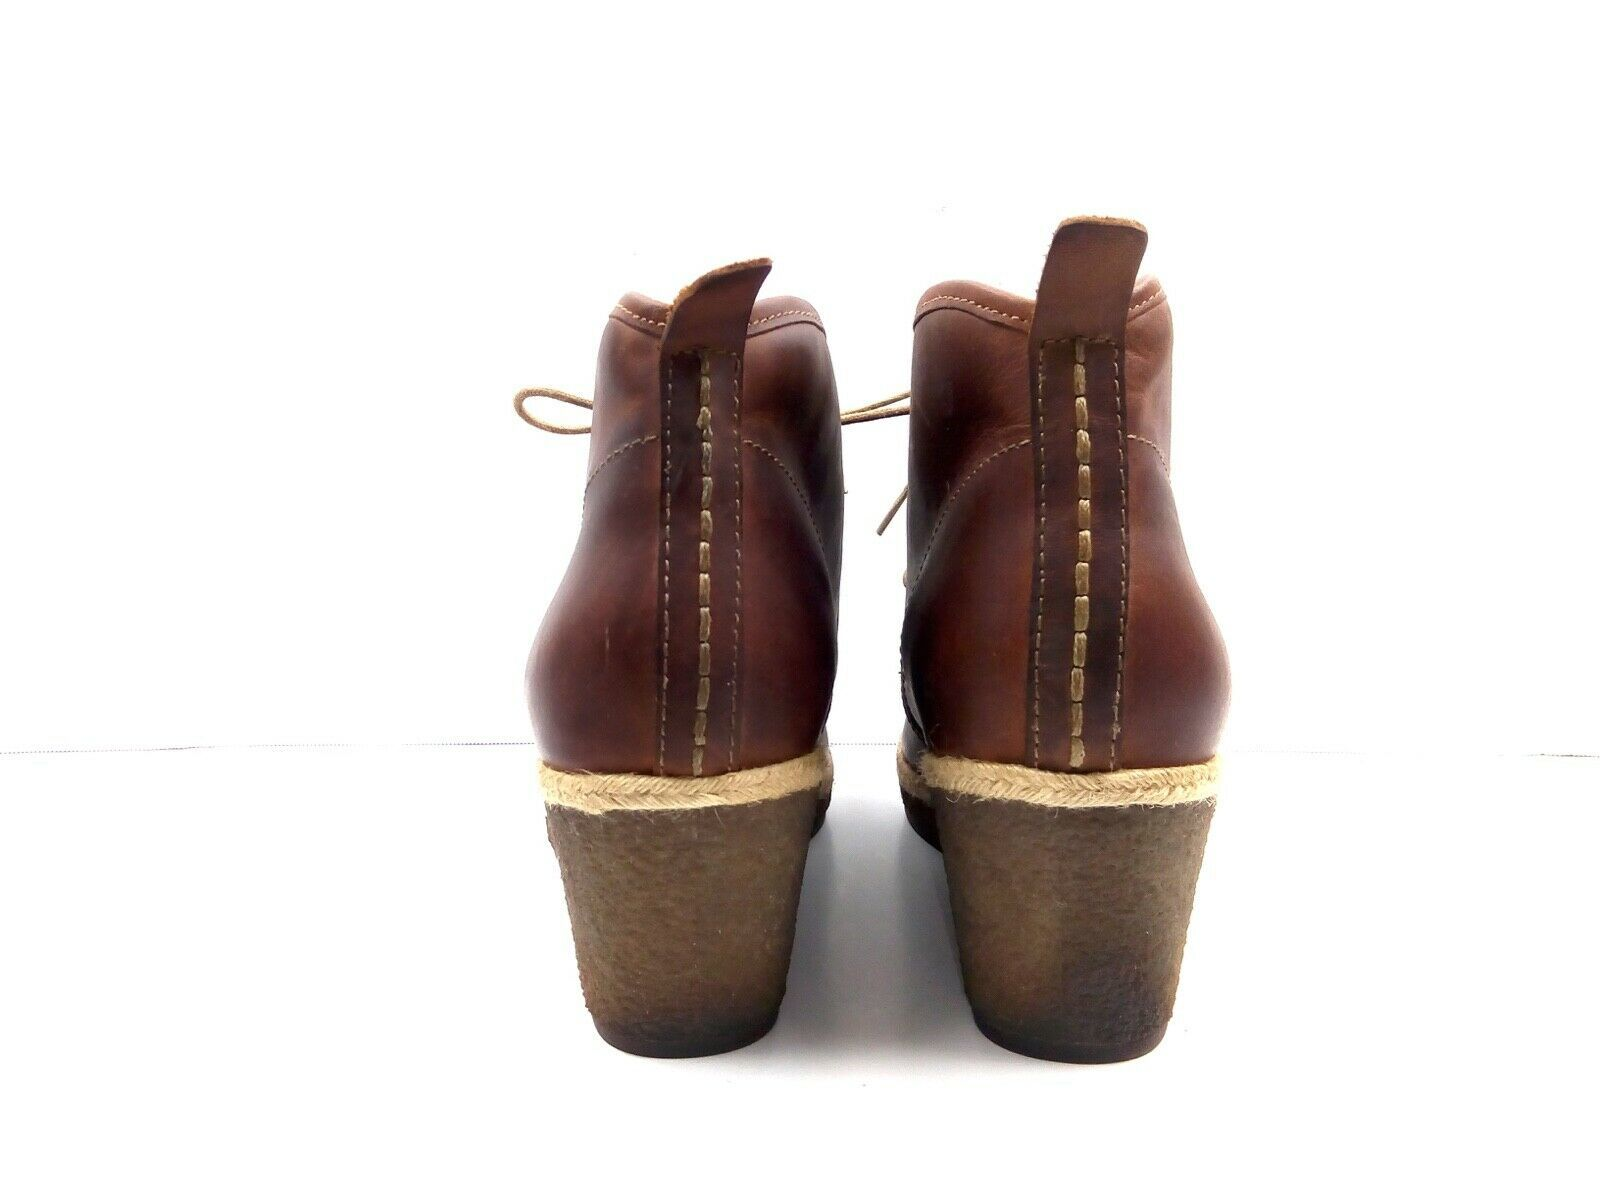 Olukai Women's Booties Wali Wedges Leather Apron toe Ankle Boots EUR 37.5 US 7.5